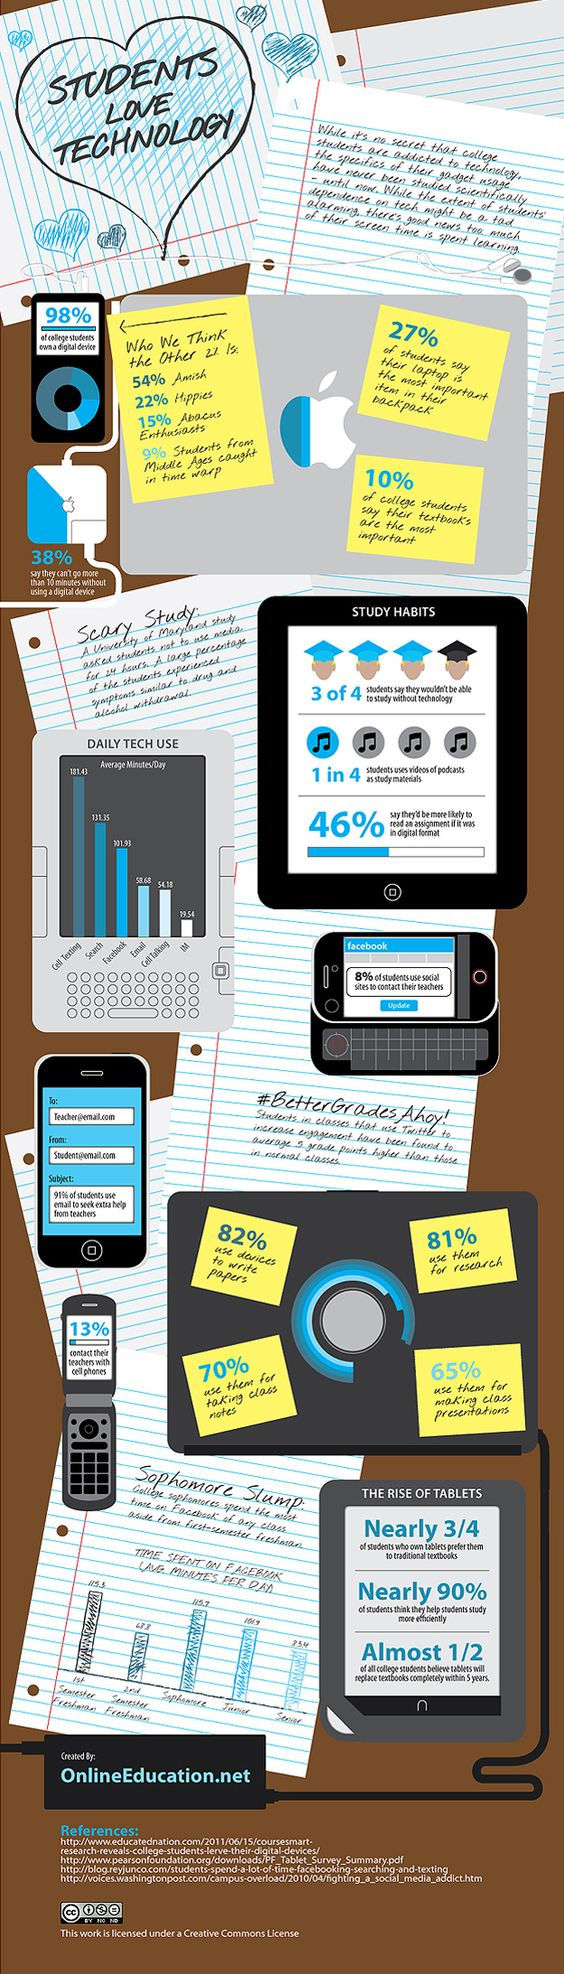 College Students & Technology: A Sign Of The Times #infographics